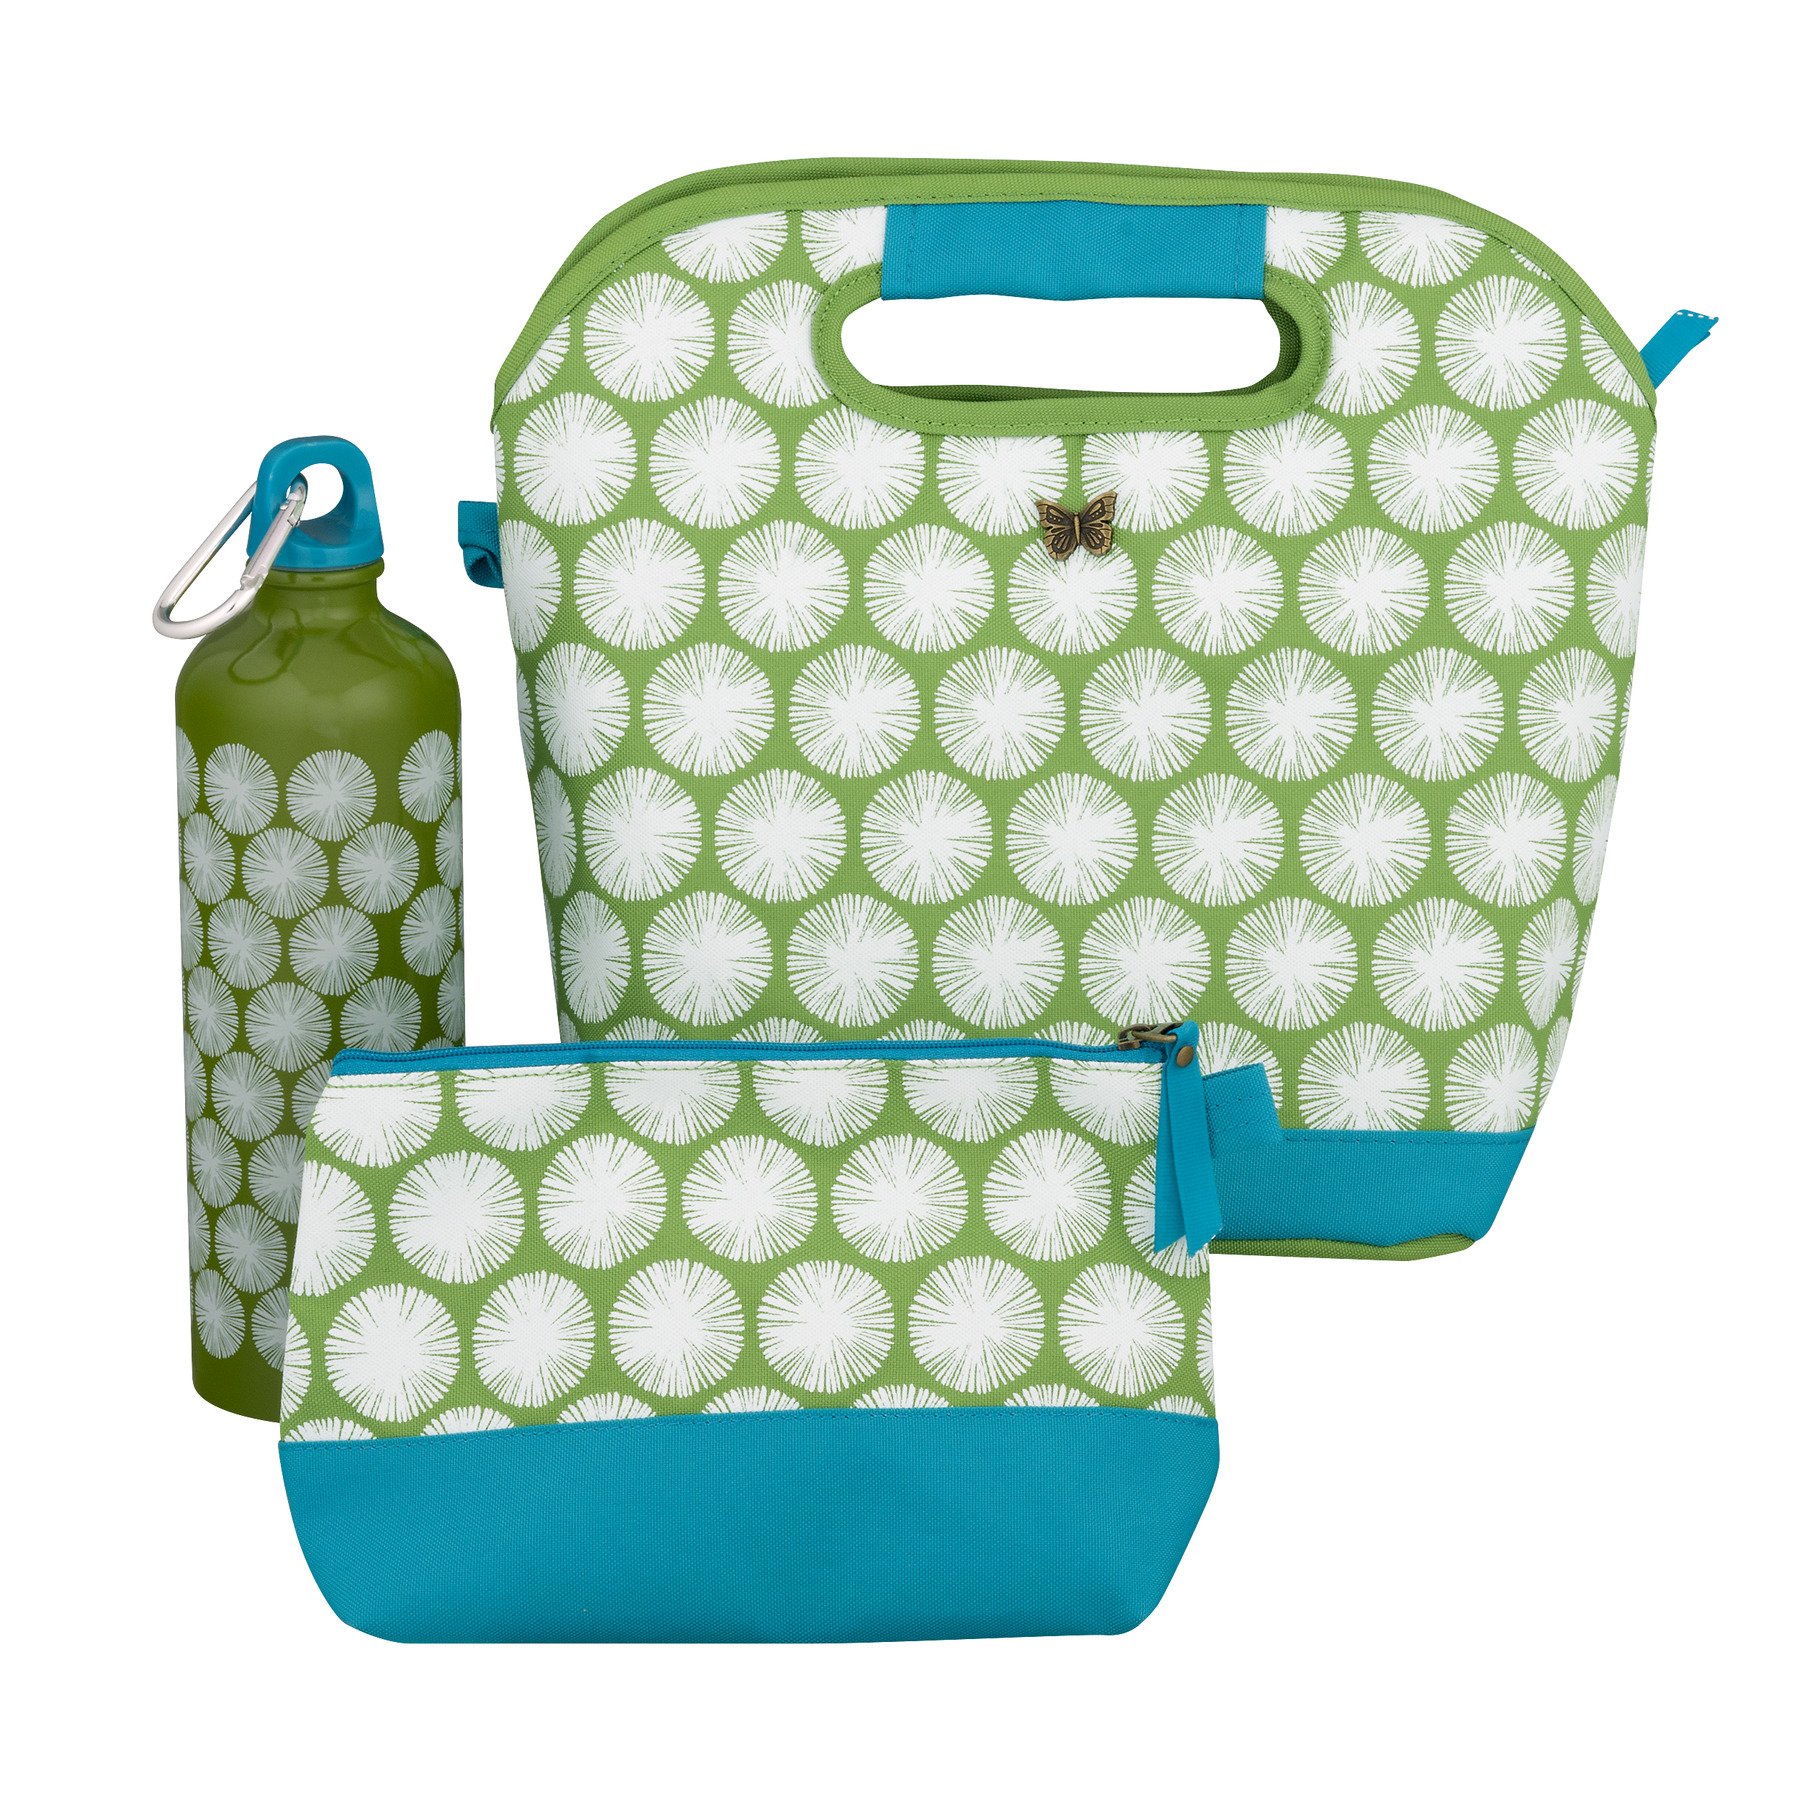 The Pioneer Woman Insulated Lunch Bag And Water Bottle, 1.0 CT